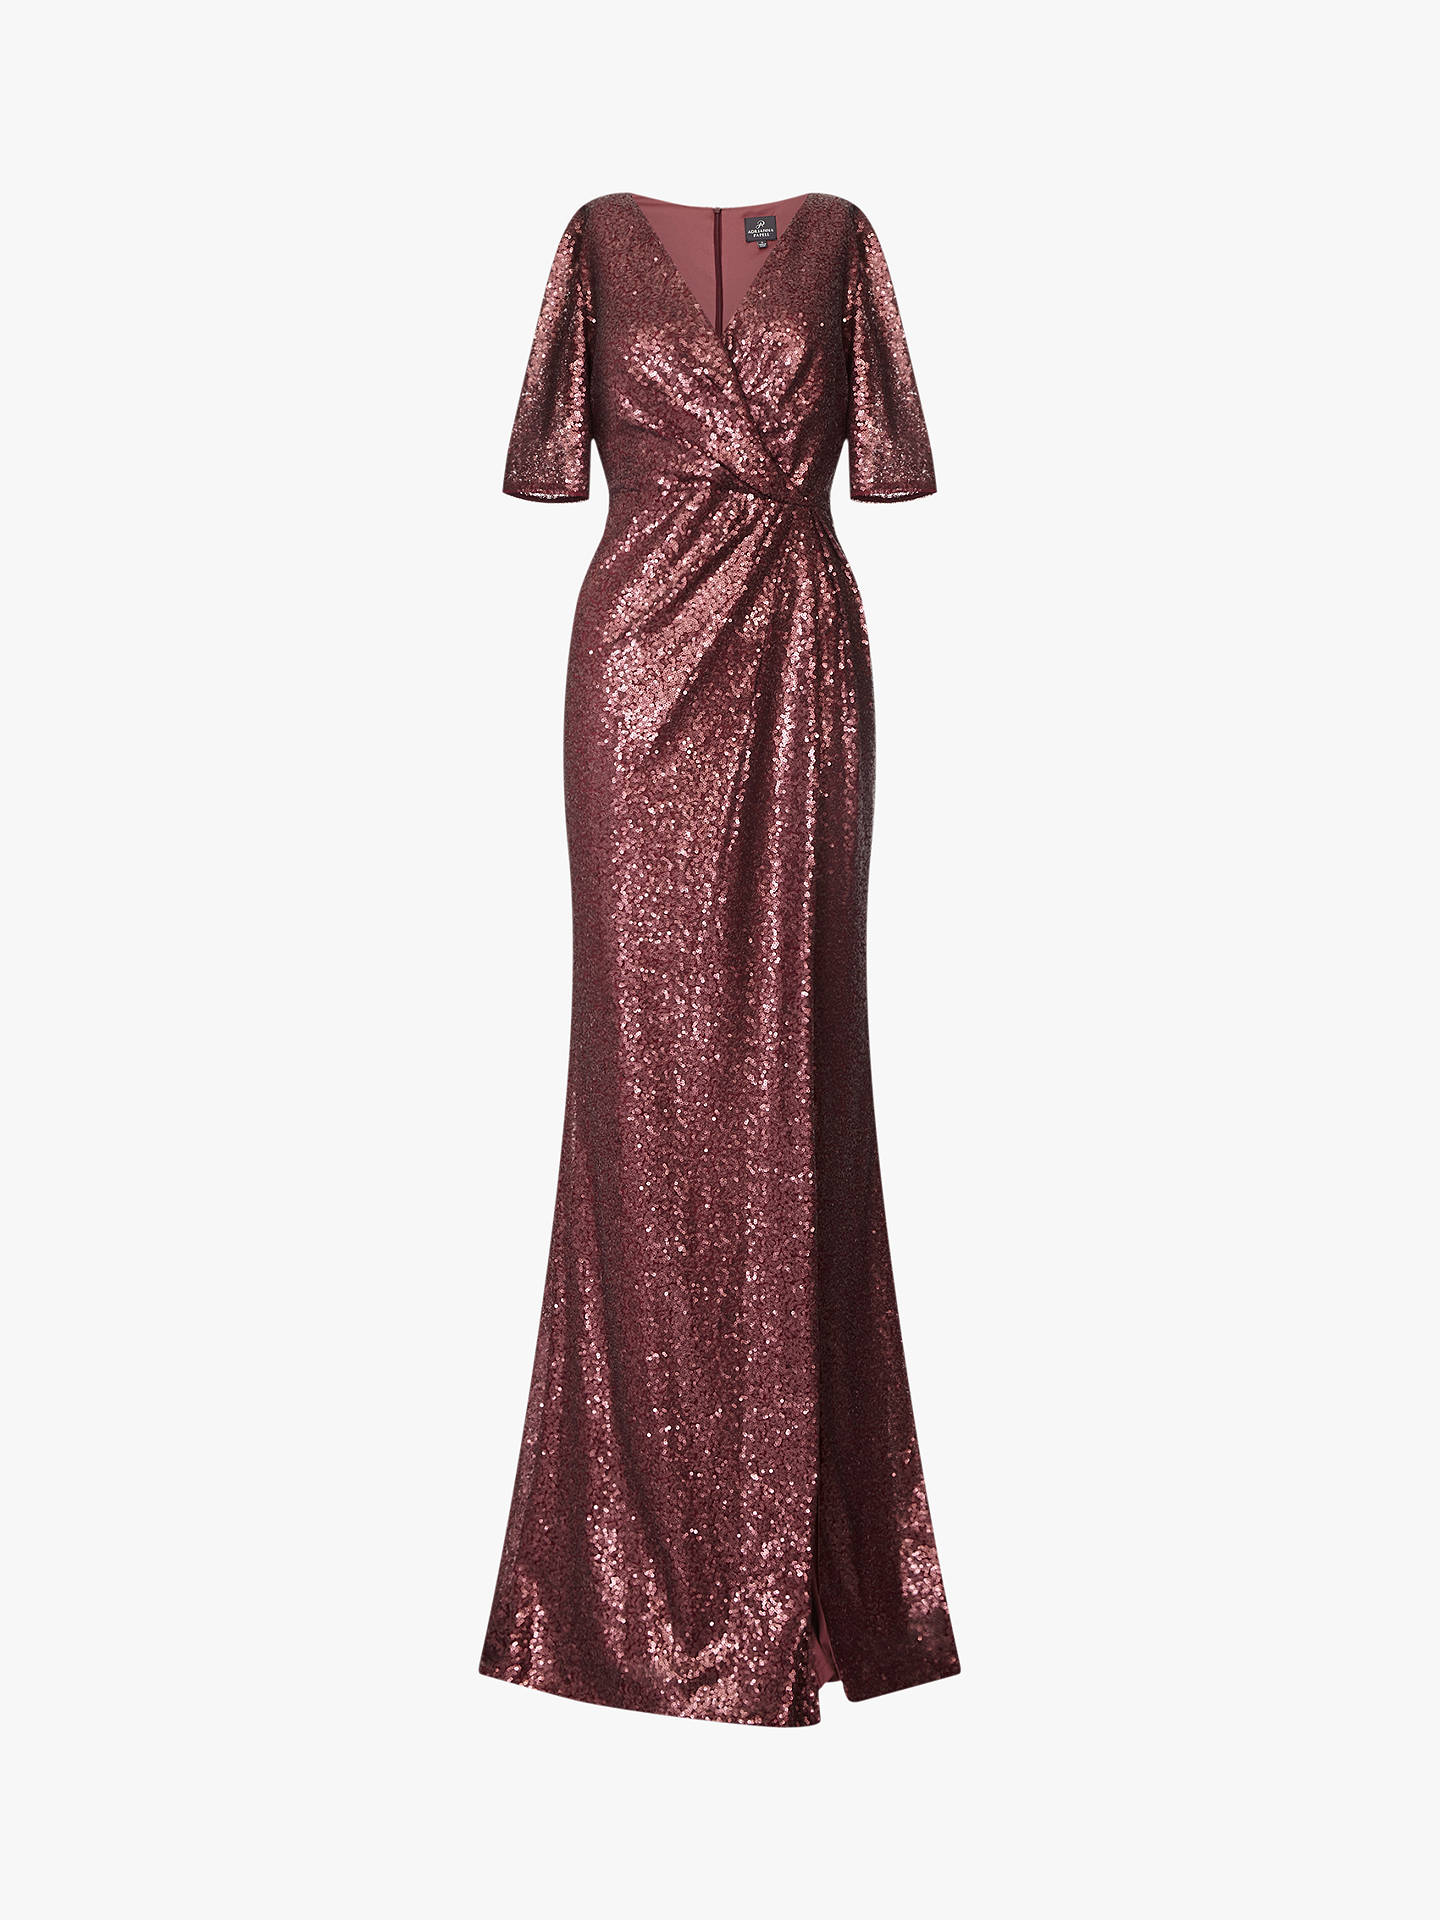 Buy Adrianna Papell Full Length Wrap Sequin Dress, Burgundy, 6 Online at johnlewis.com